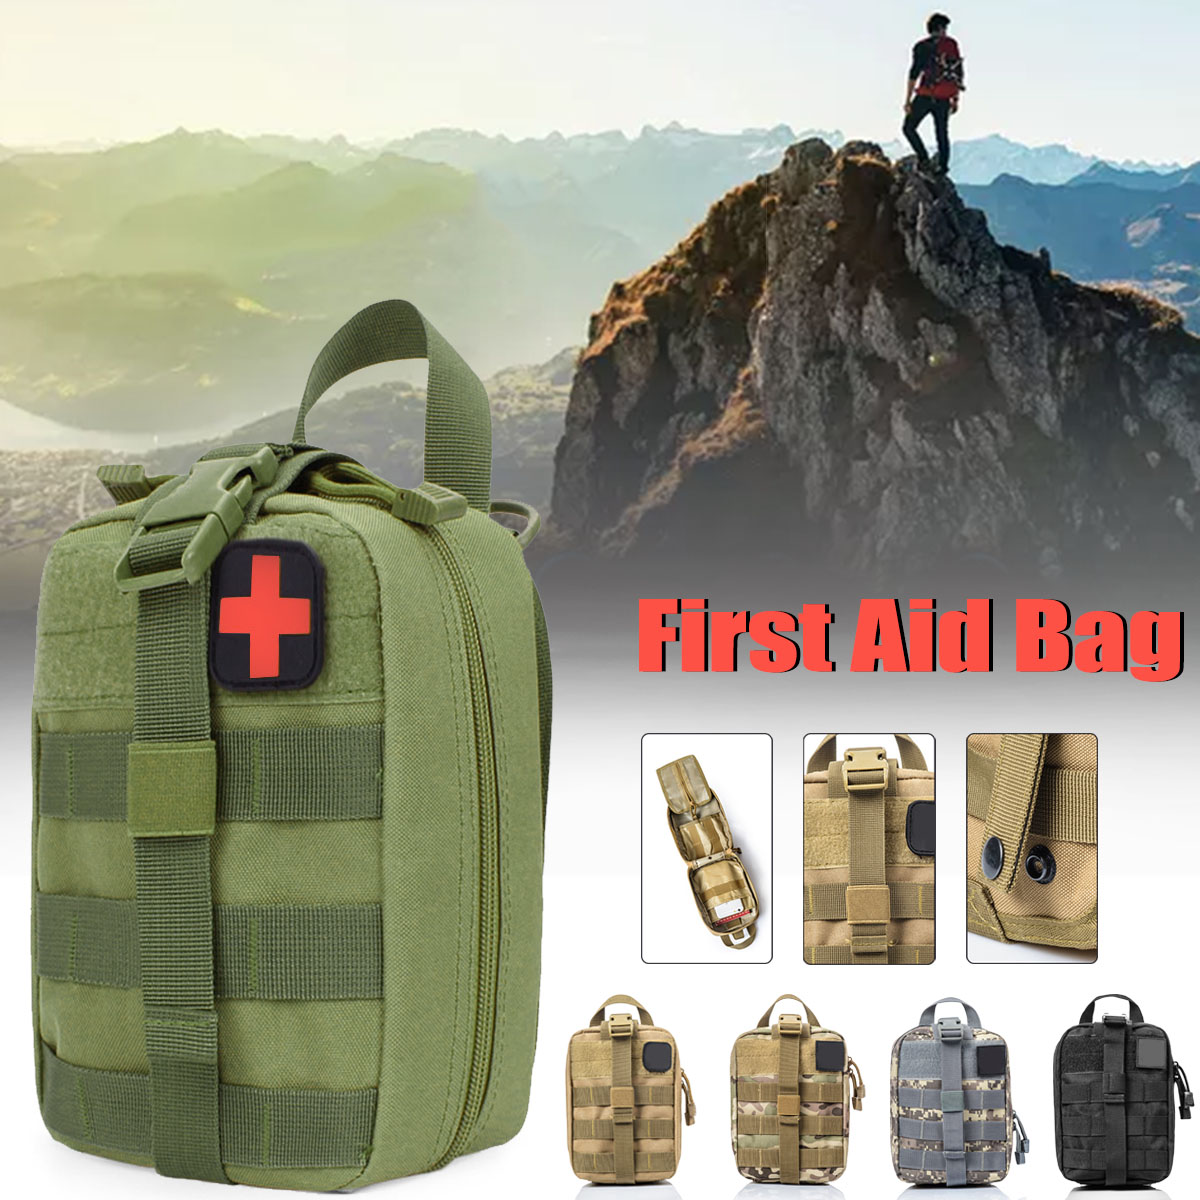 600D Nylon Outdoor Tactical Medical Bag Travel First Aid Kit Multifunctional Pack Camping Climbing Bag Emergency Case Survival600D Nylon Outdoor Tactical Medical Bag Travel First Aid Kit Multifunctional Pack Camping Climbing Bag Emergency Case Survival